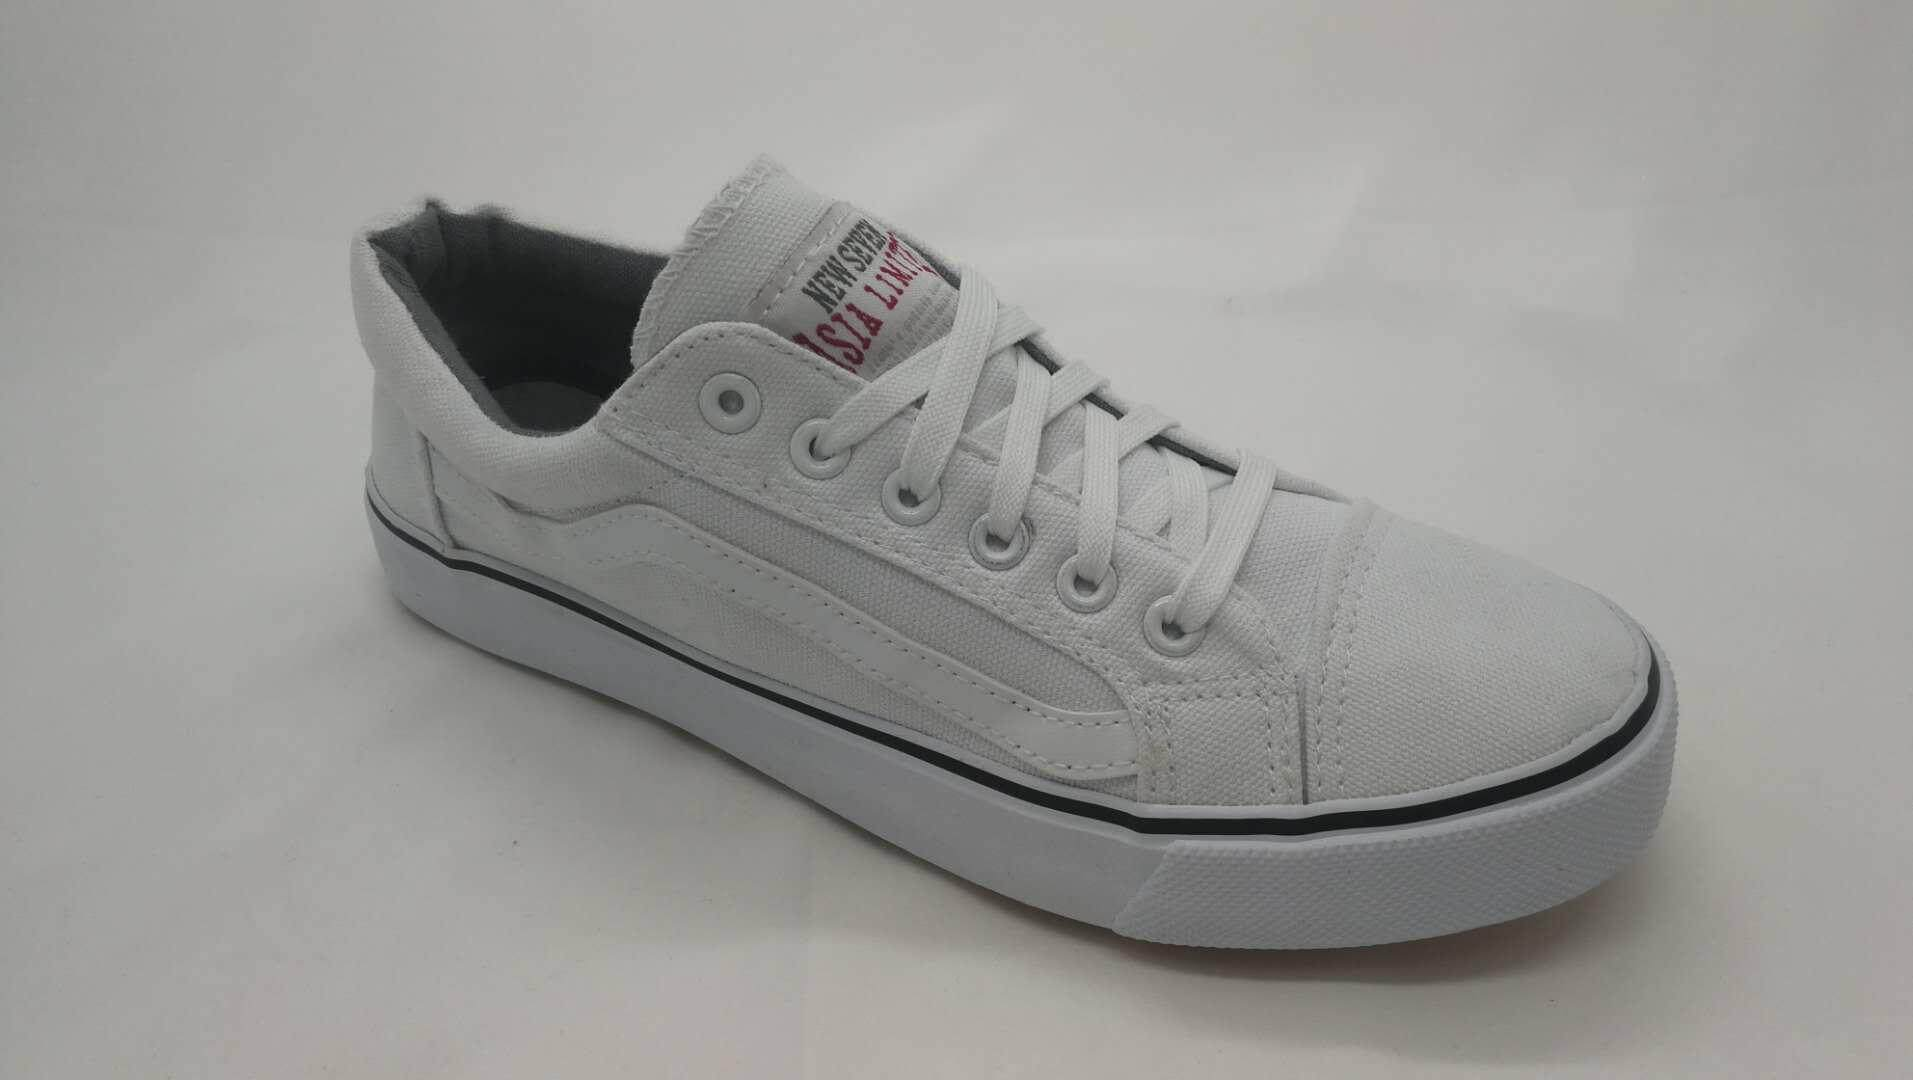 New Seven School Shoes XW600-262